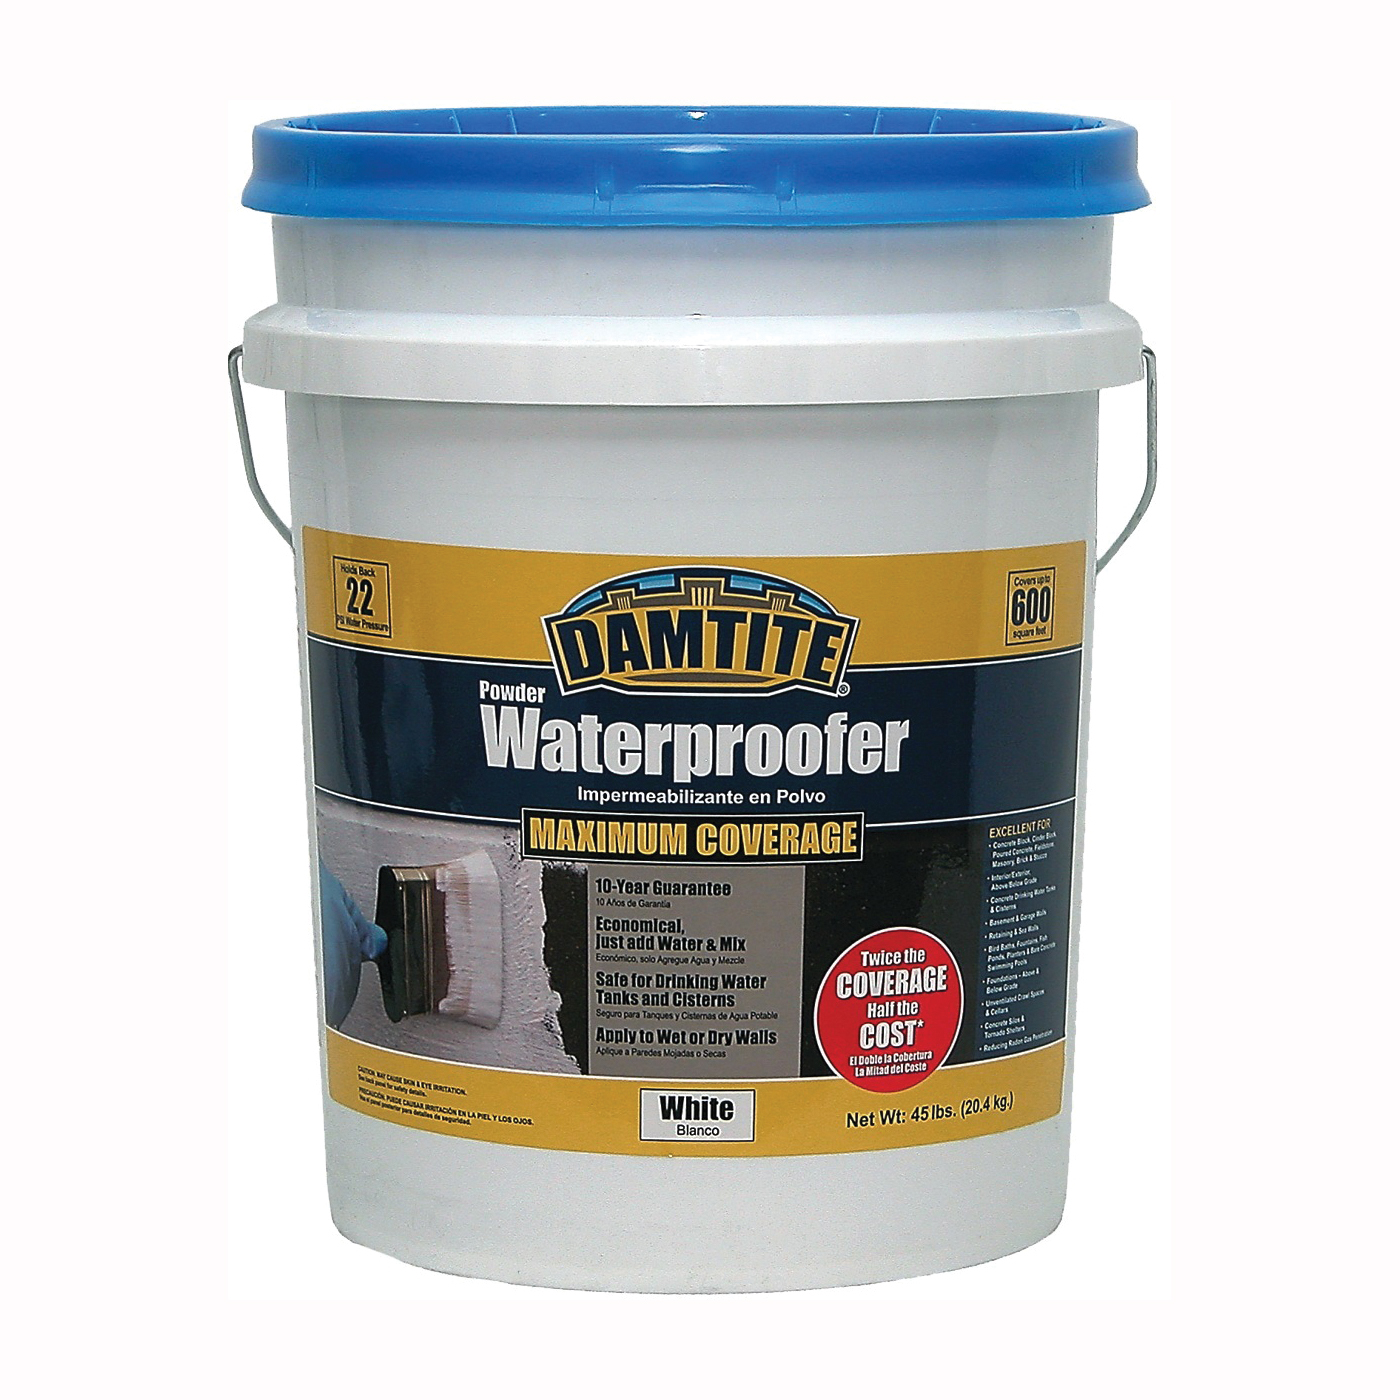 Picture of DAMTITE 01451 Powder Waterproofer, White, Powder, 45 lb Package, Pail